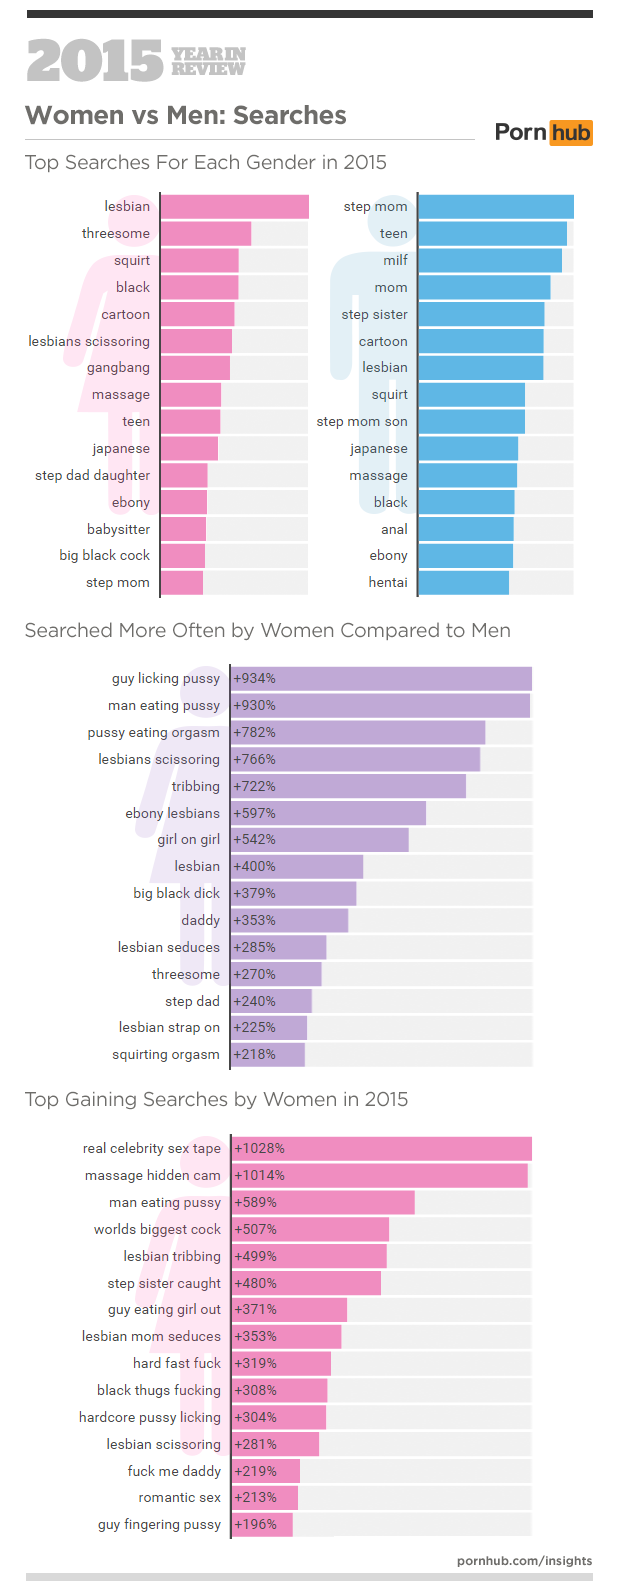 4-pornhub-insights-2015-year-in-review-female-male-searches.png